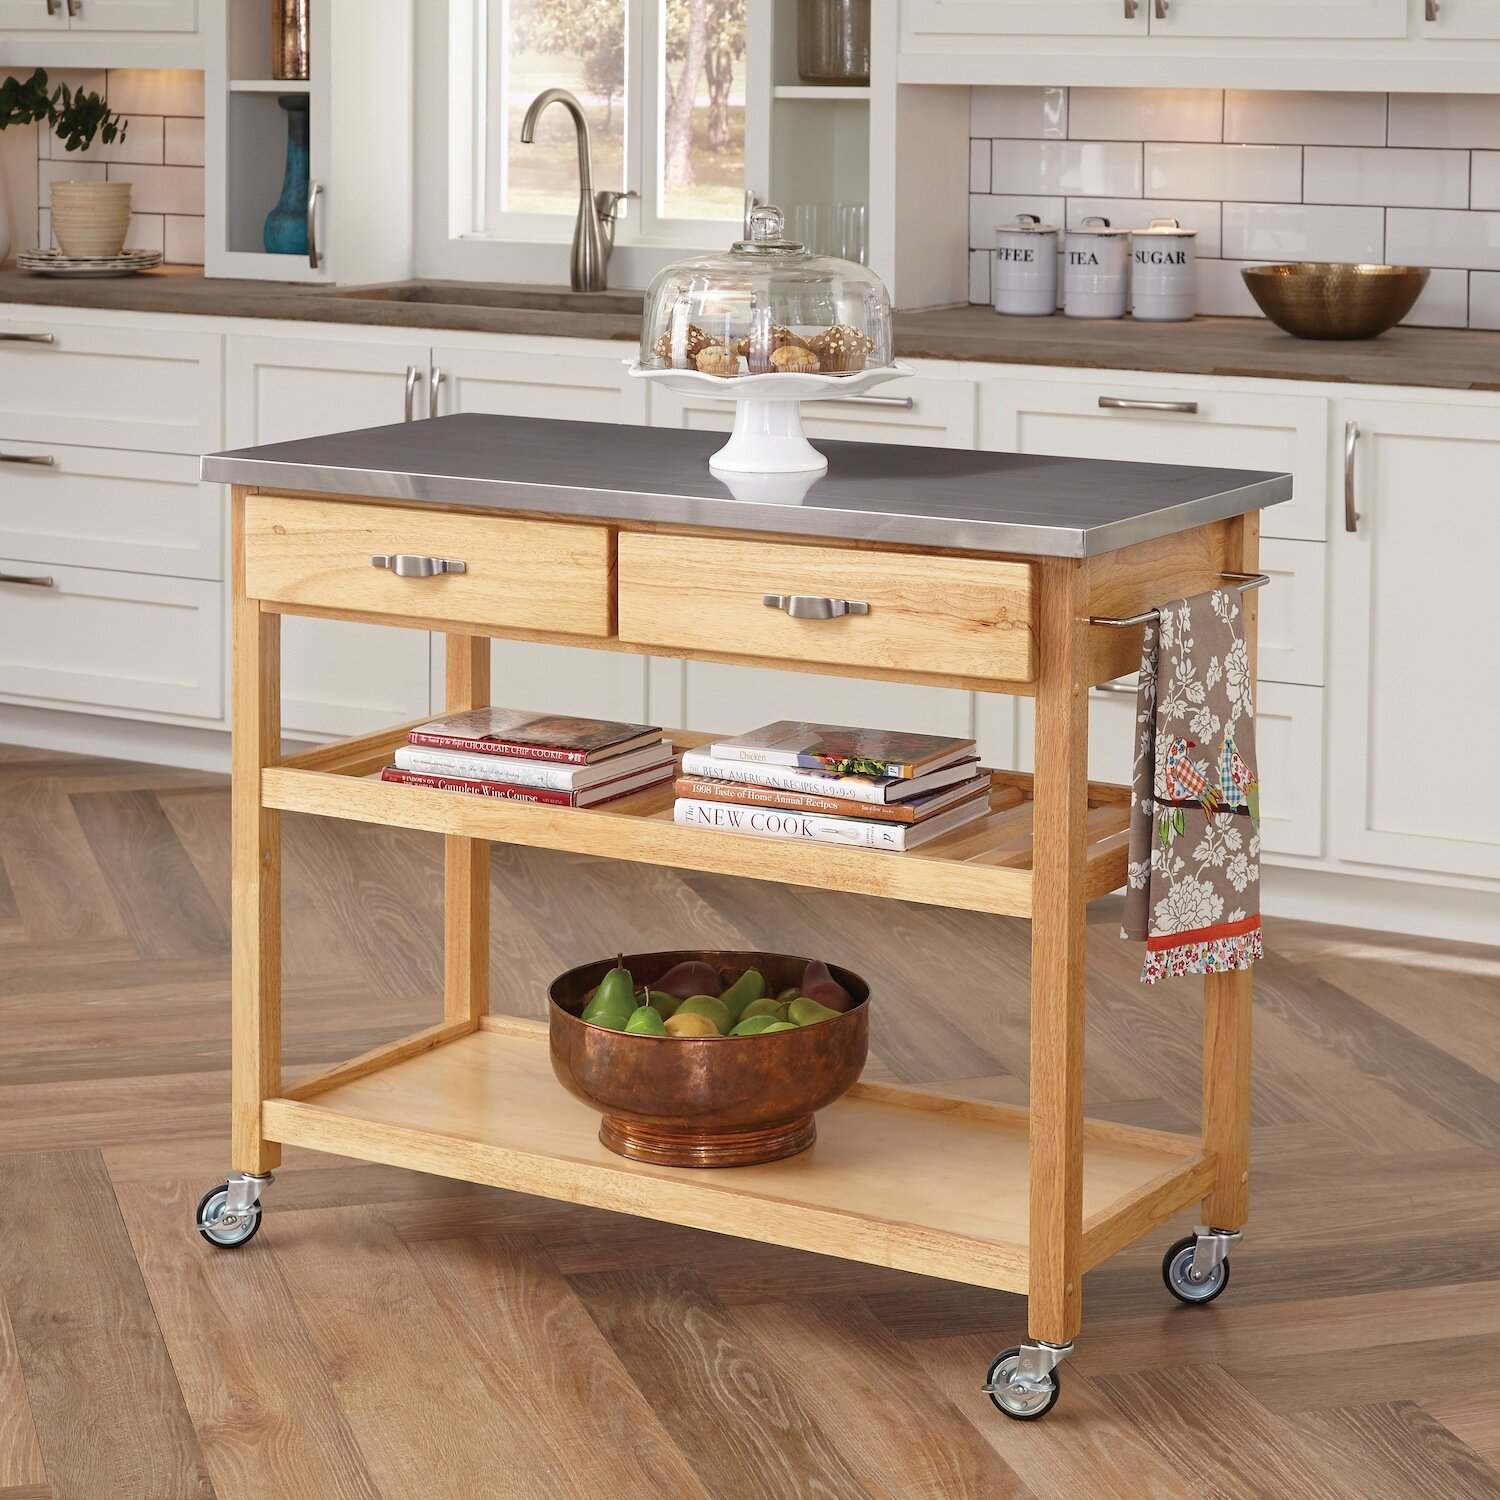 marvelous Wayfair Kitchen Island #1: Home Styles Kitchen Island with Stainless Steel Top